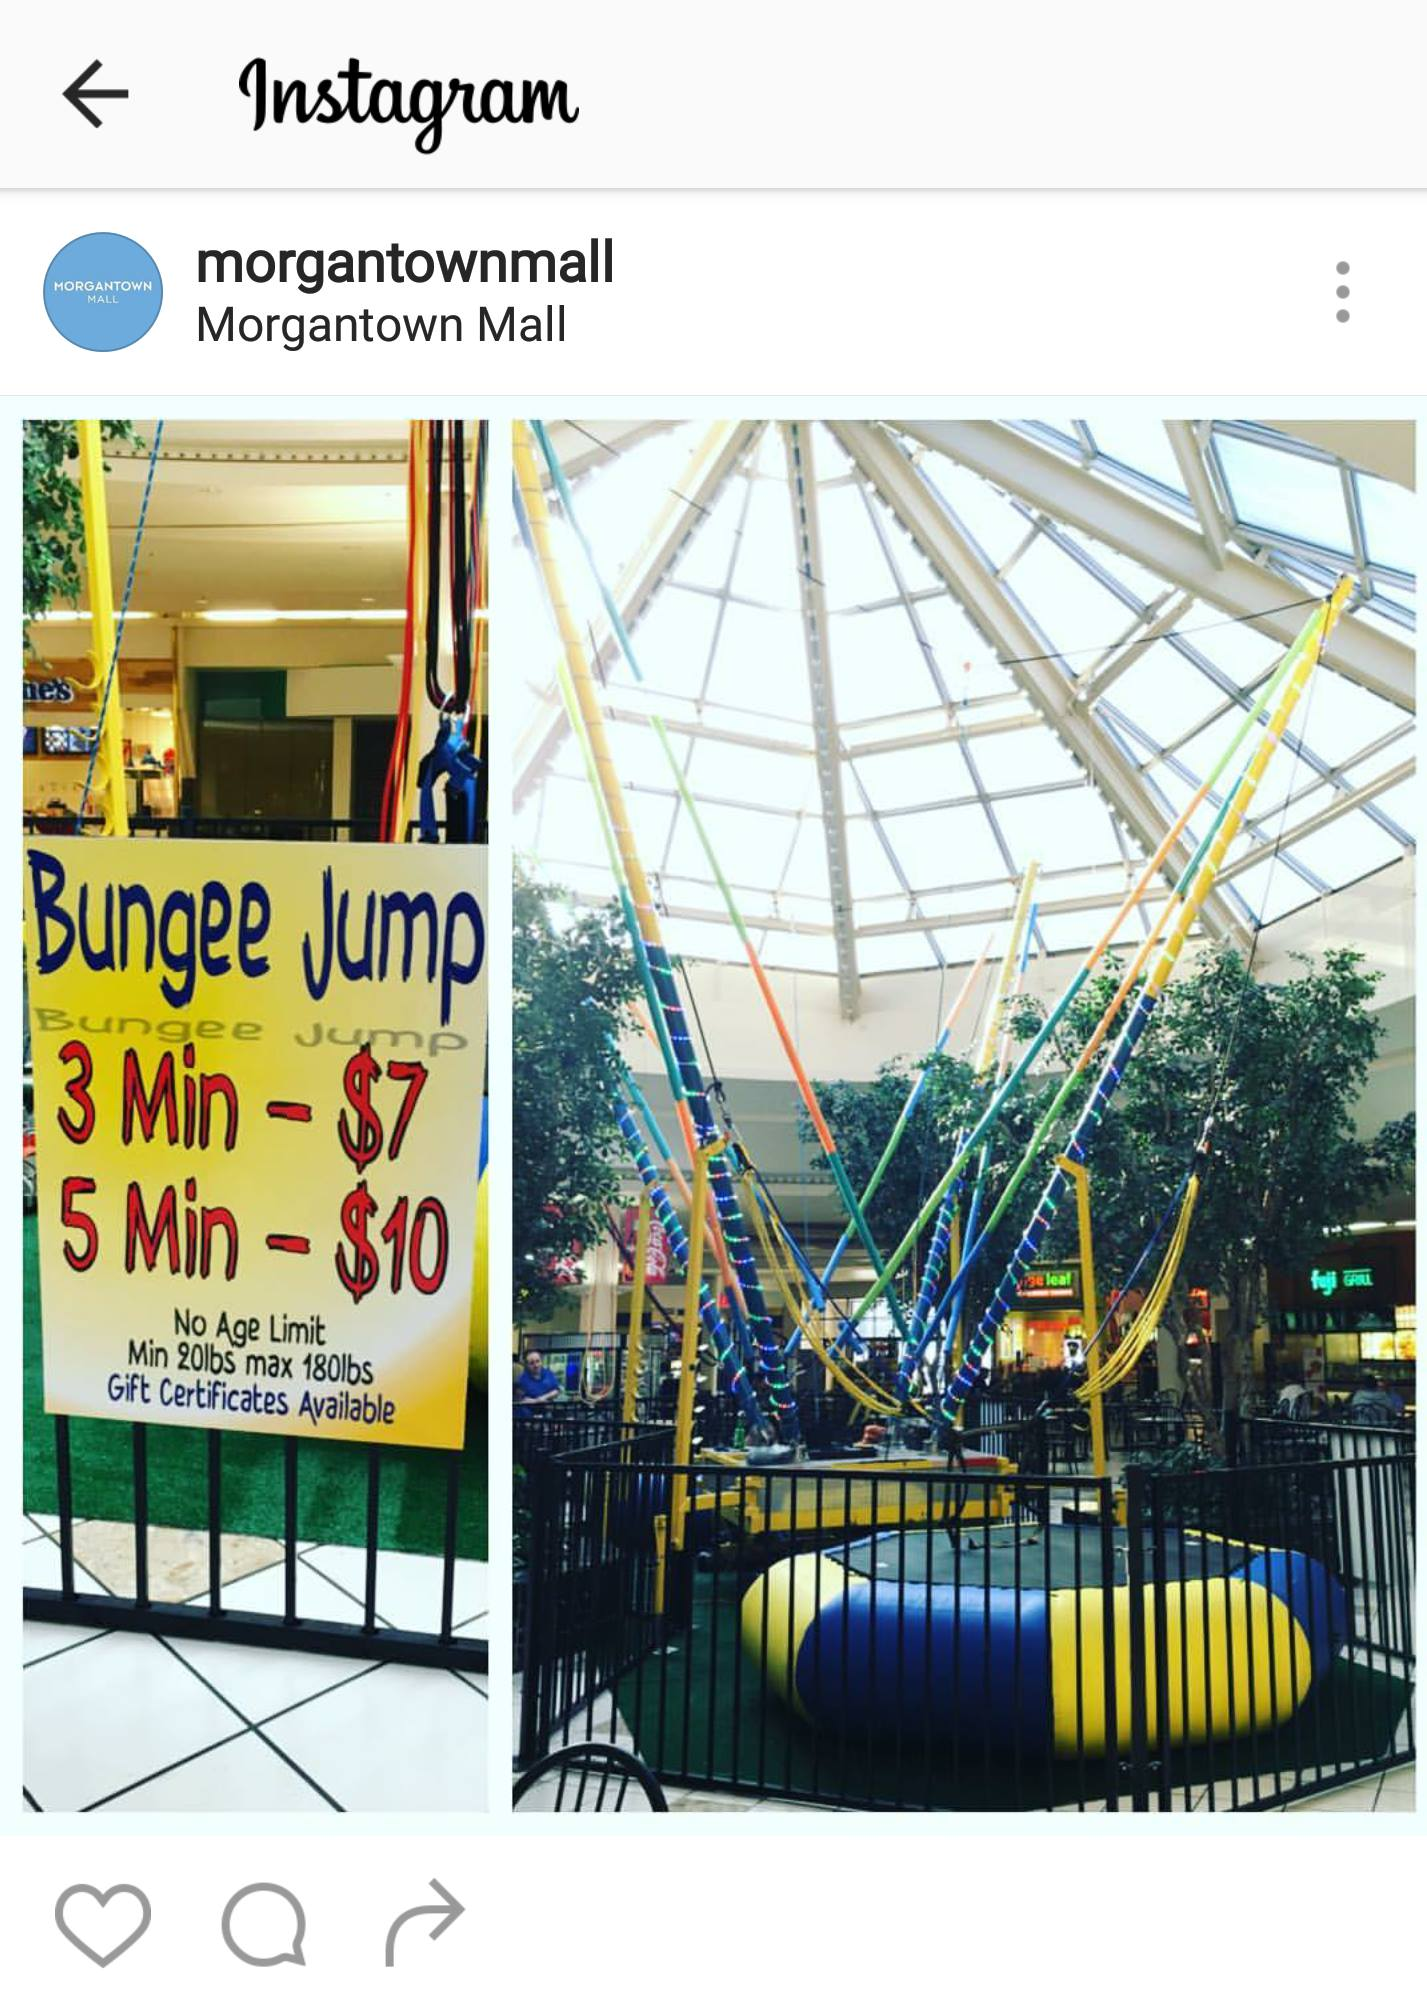 bunjee jump sign in mall